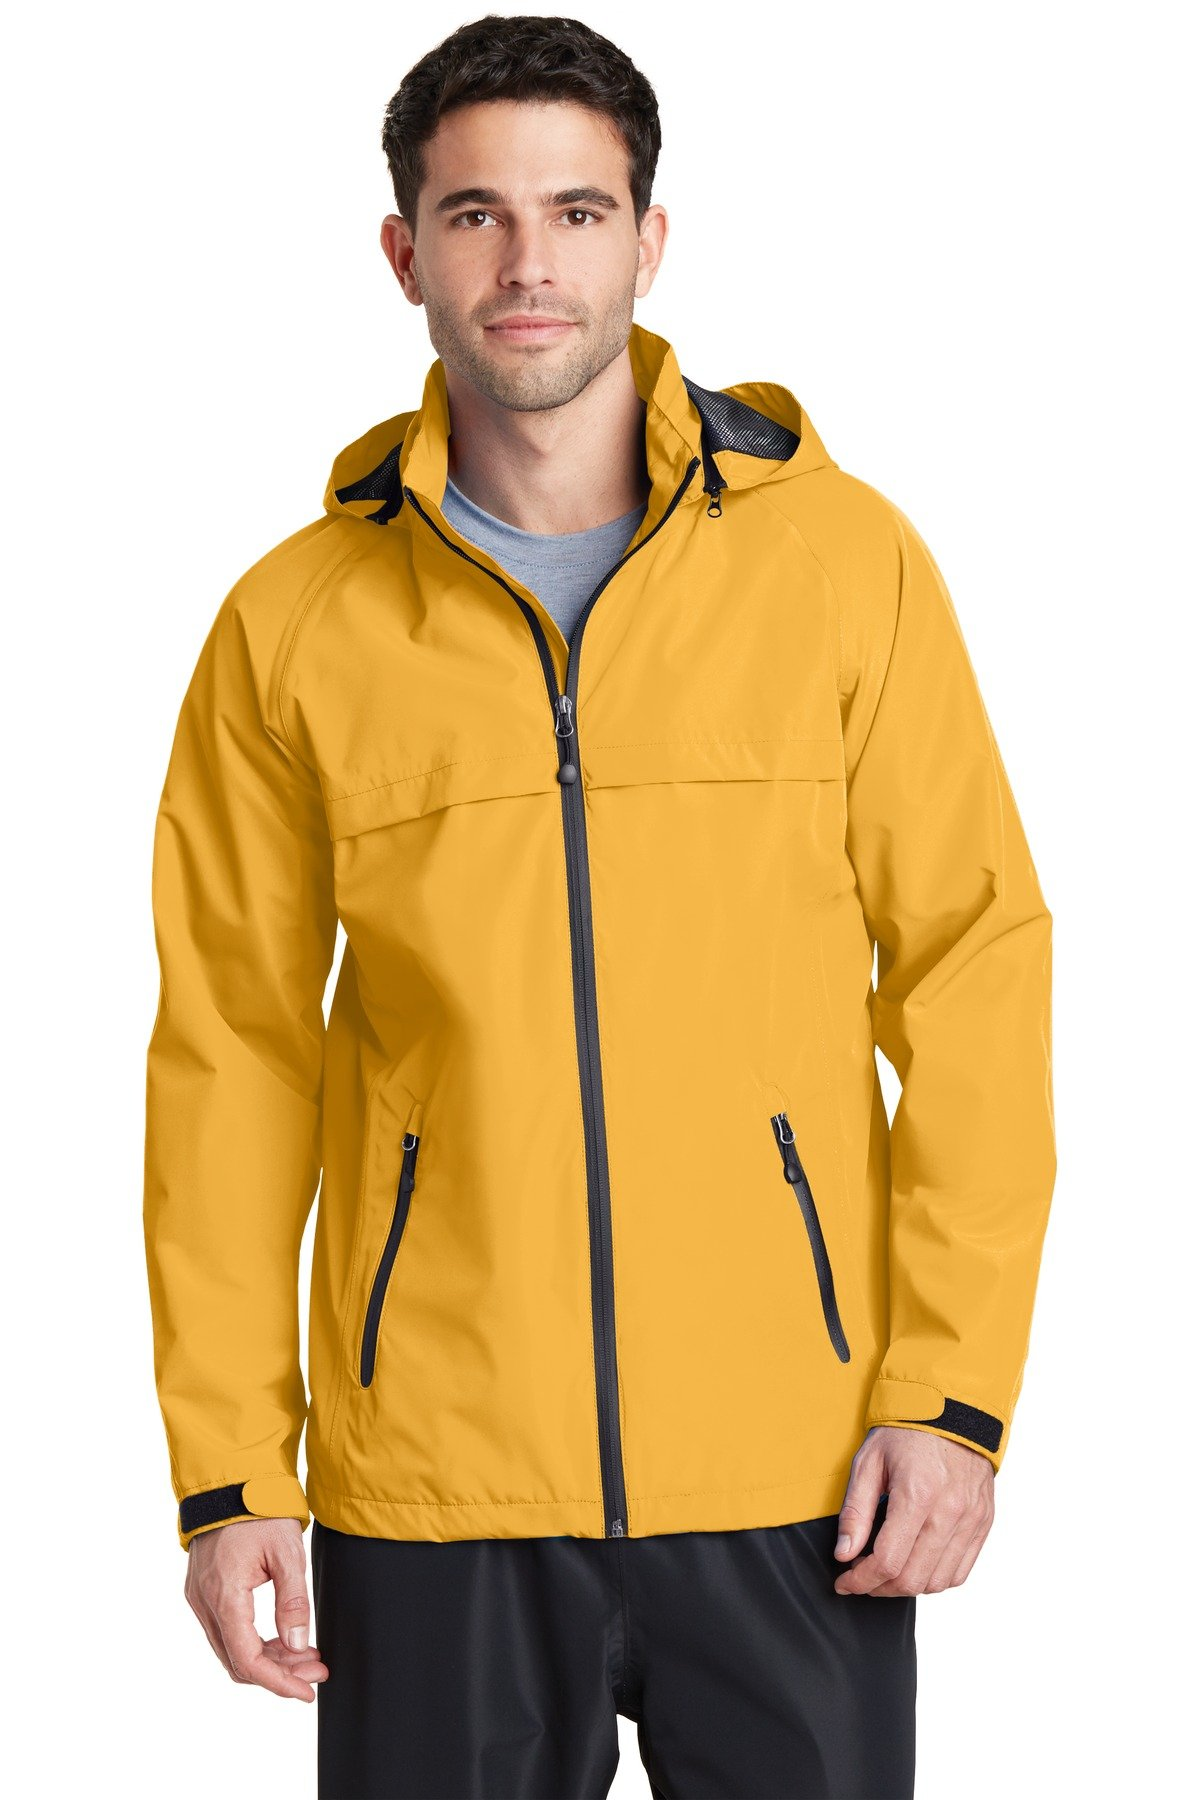 Port Authority Torrent Waterproof Jacket J333 Slicker Yellow XL by Port Authority